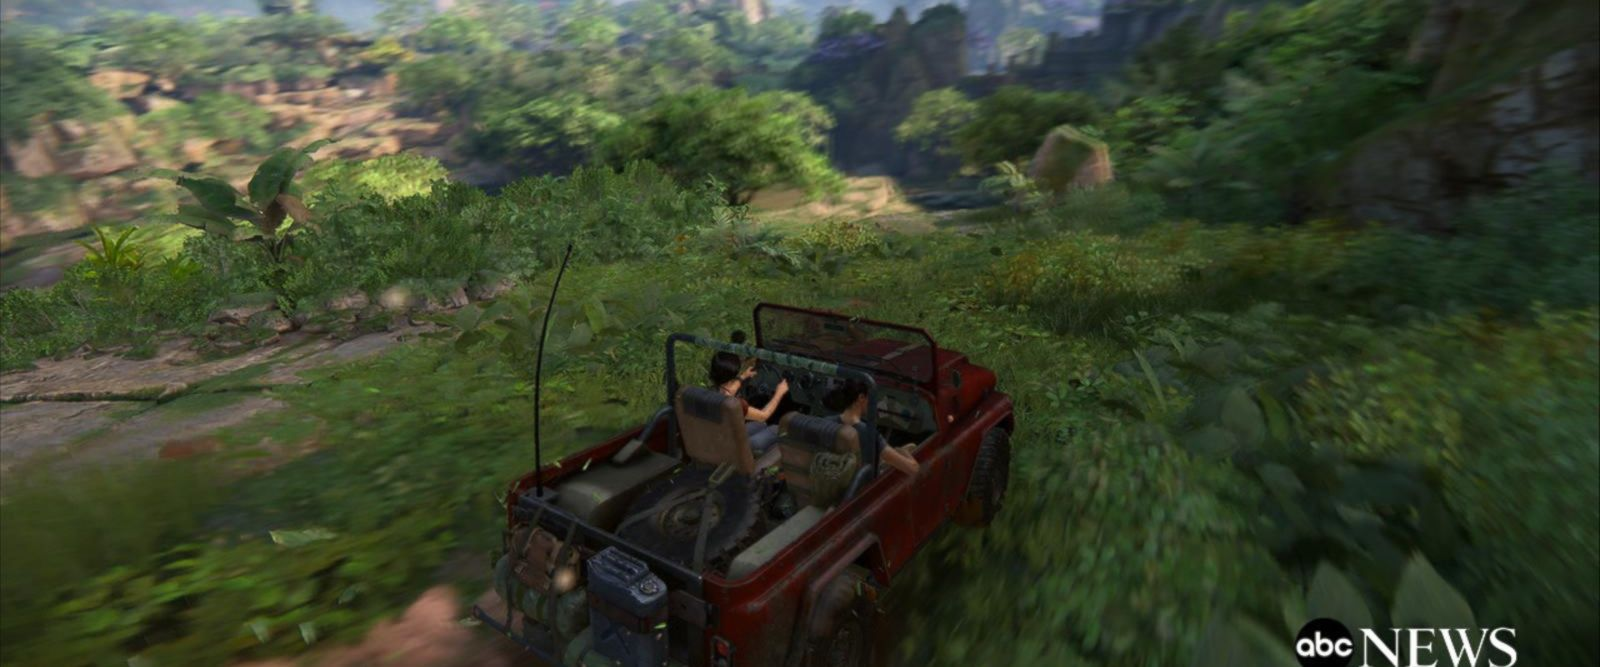 VIDEO: Sneak peek: the new 'Uncharted' video game